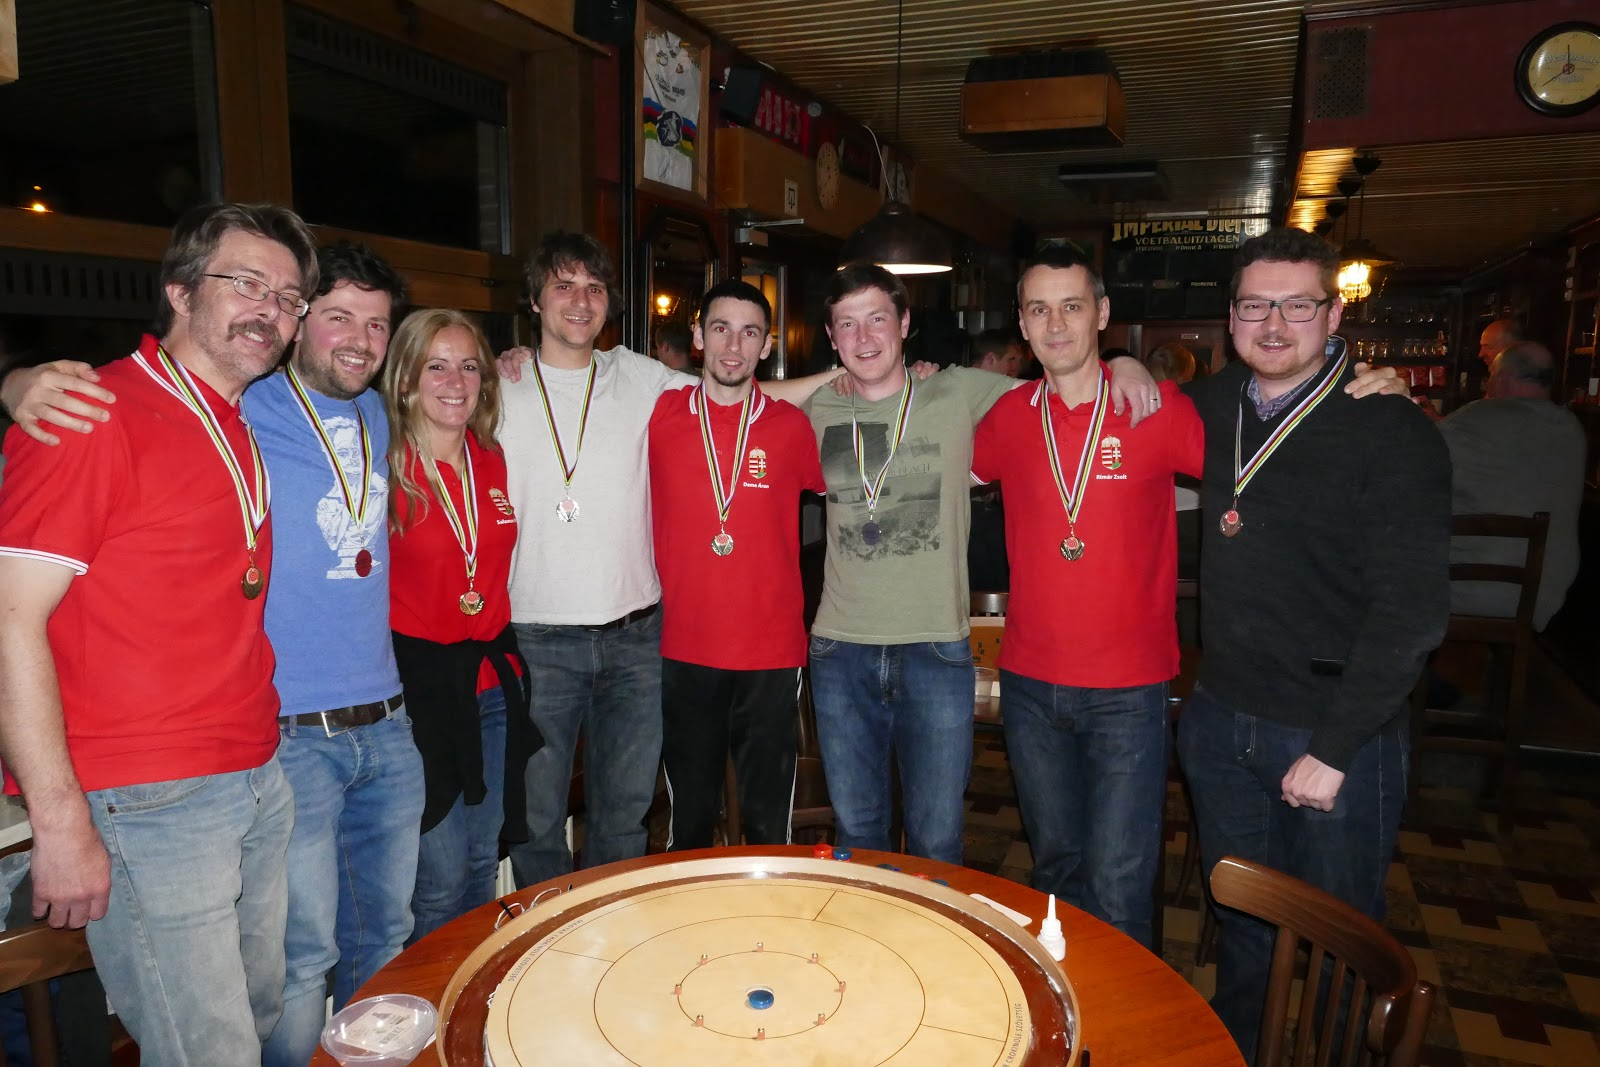 Crokinole players posing in front of a board